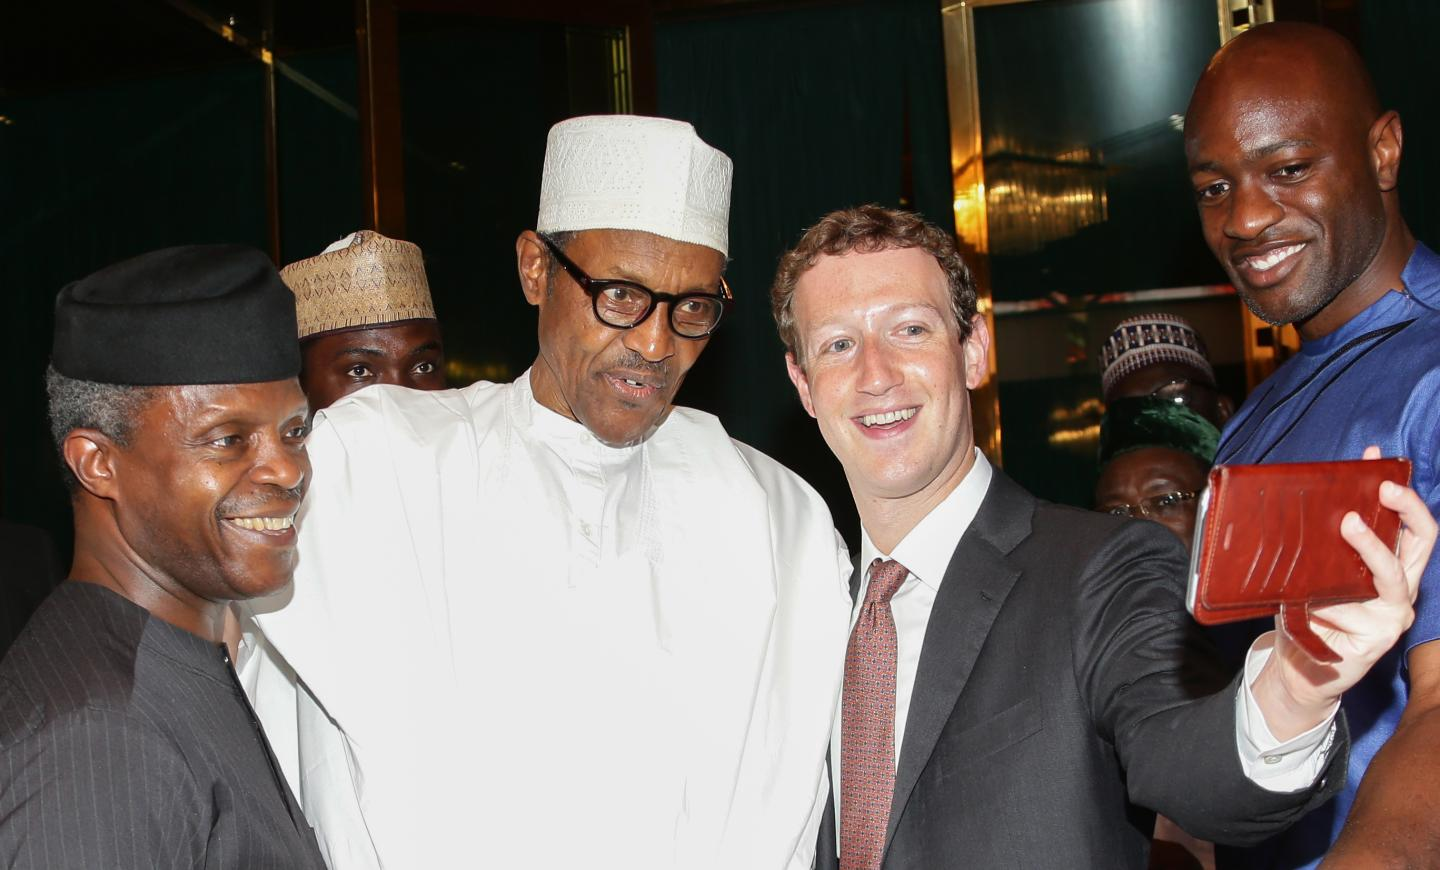 Facebook founder Mark Zuckerberg takes a selfie with Nigerian President Muhammadu Buhari (center) and Vice-President Yemi Osinbajo during a visit to the presidential palace in Abuja, Nigeria, on September 2. Zuckerberg was full of praise for Nigeria's technology sector during his surprise visit. SUNDAY AGHAEZE/AFP/GETTY